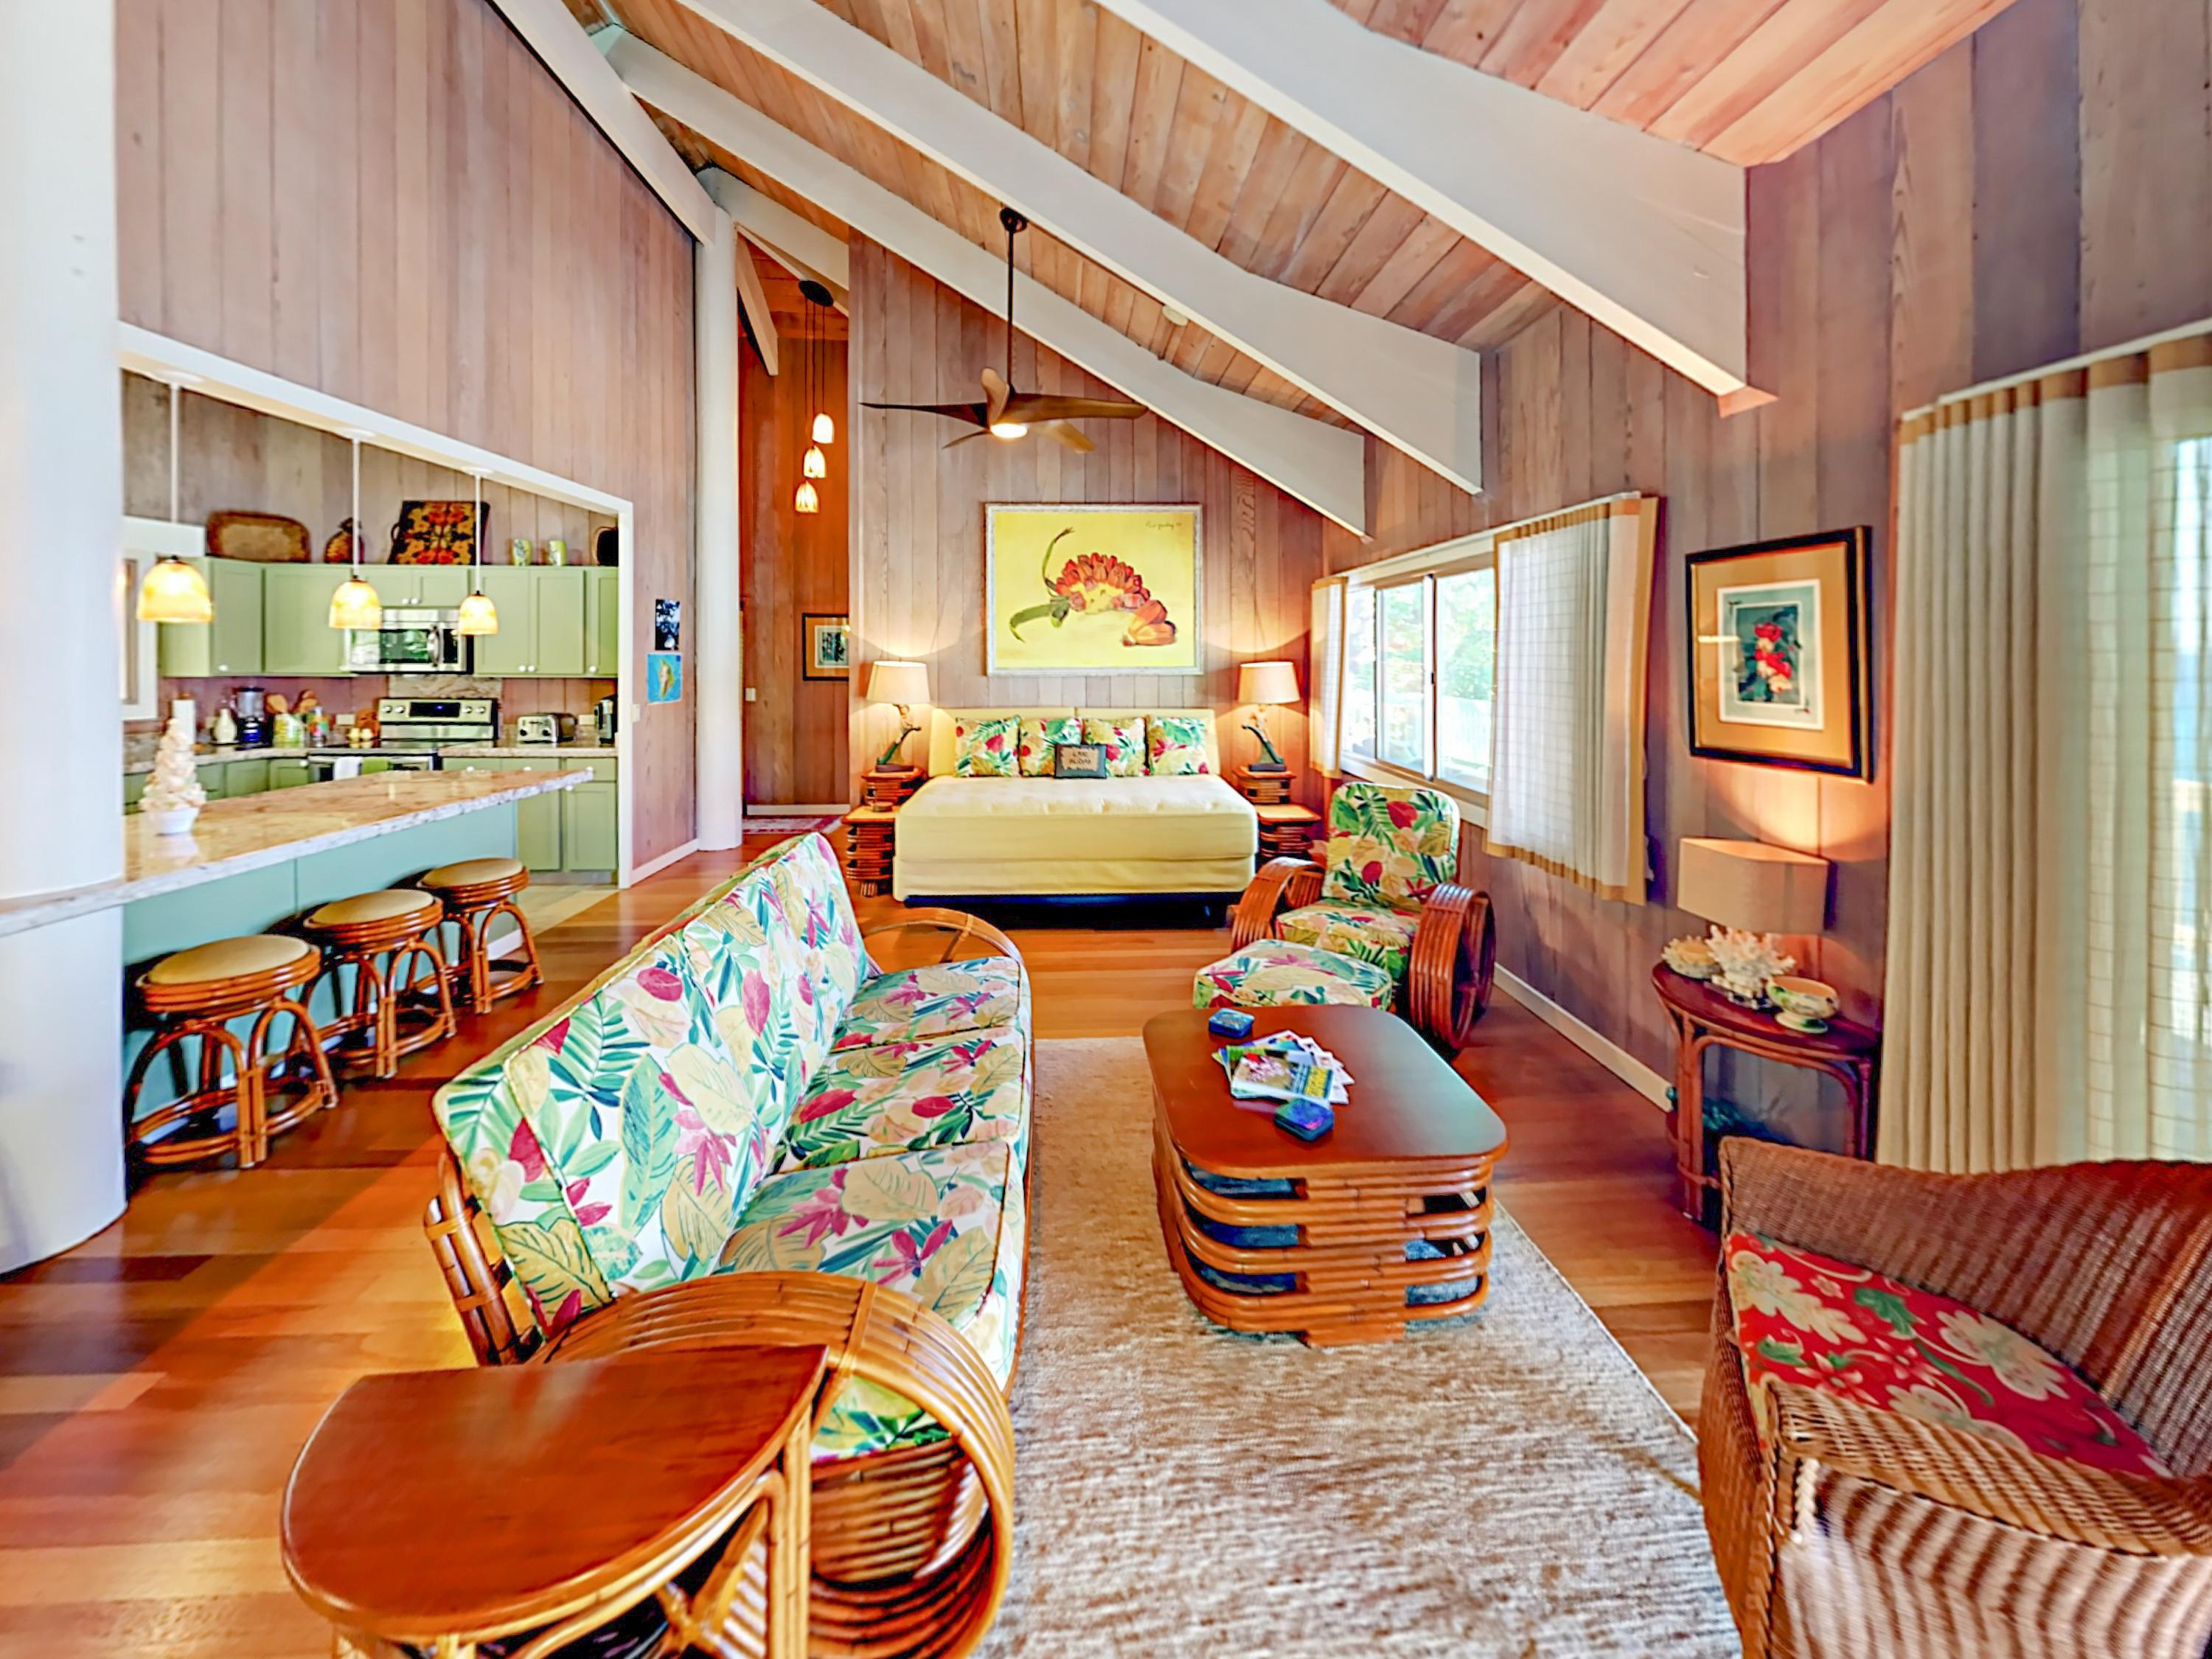 Hardwood floors, wood paneling, and vaulted ceilings give the modern living area a touch of traditional Hawaiian charm.